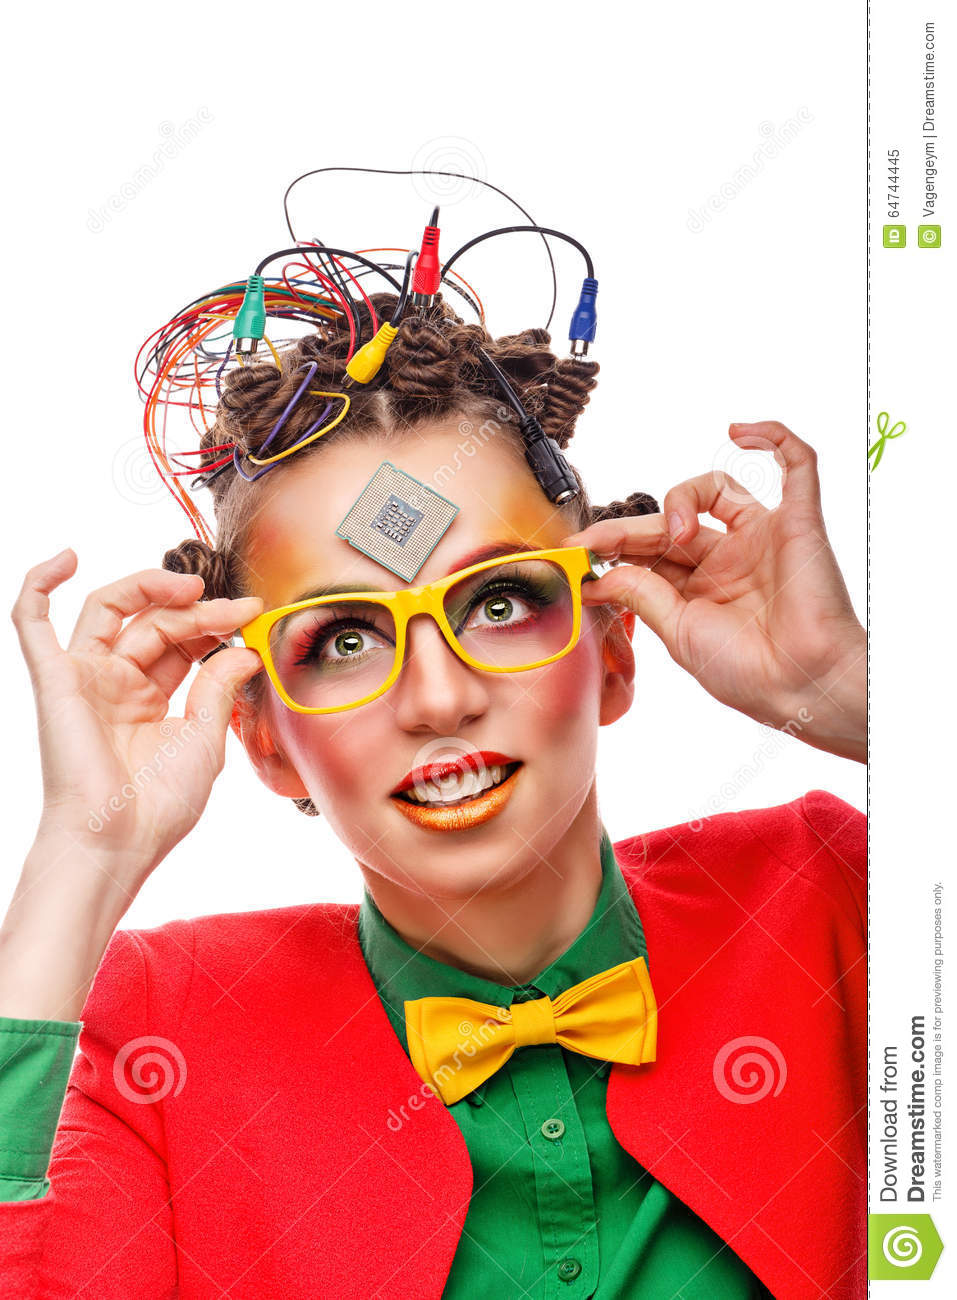 girl geek computer technician glasses stock photo